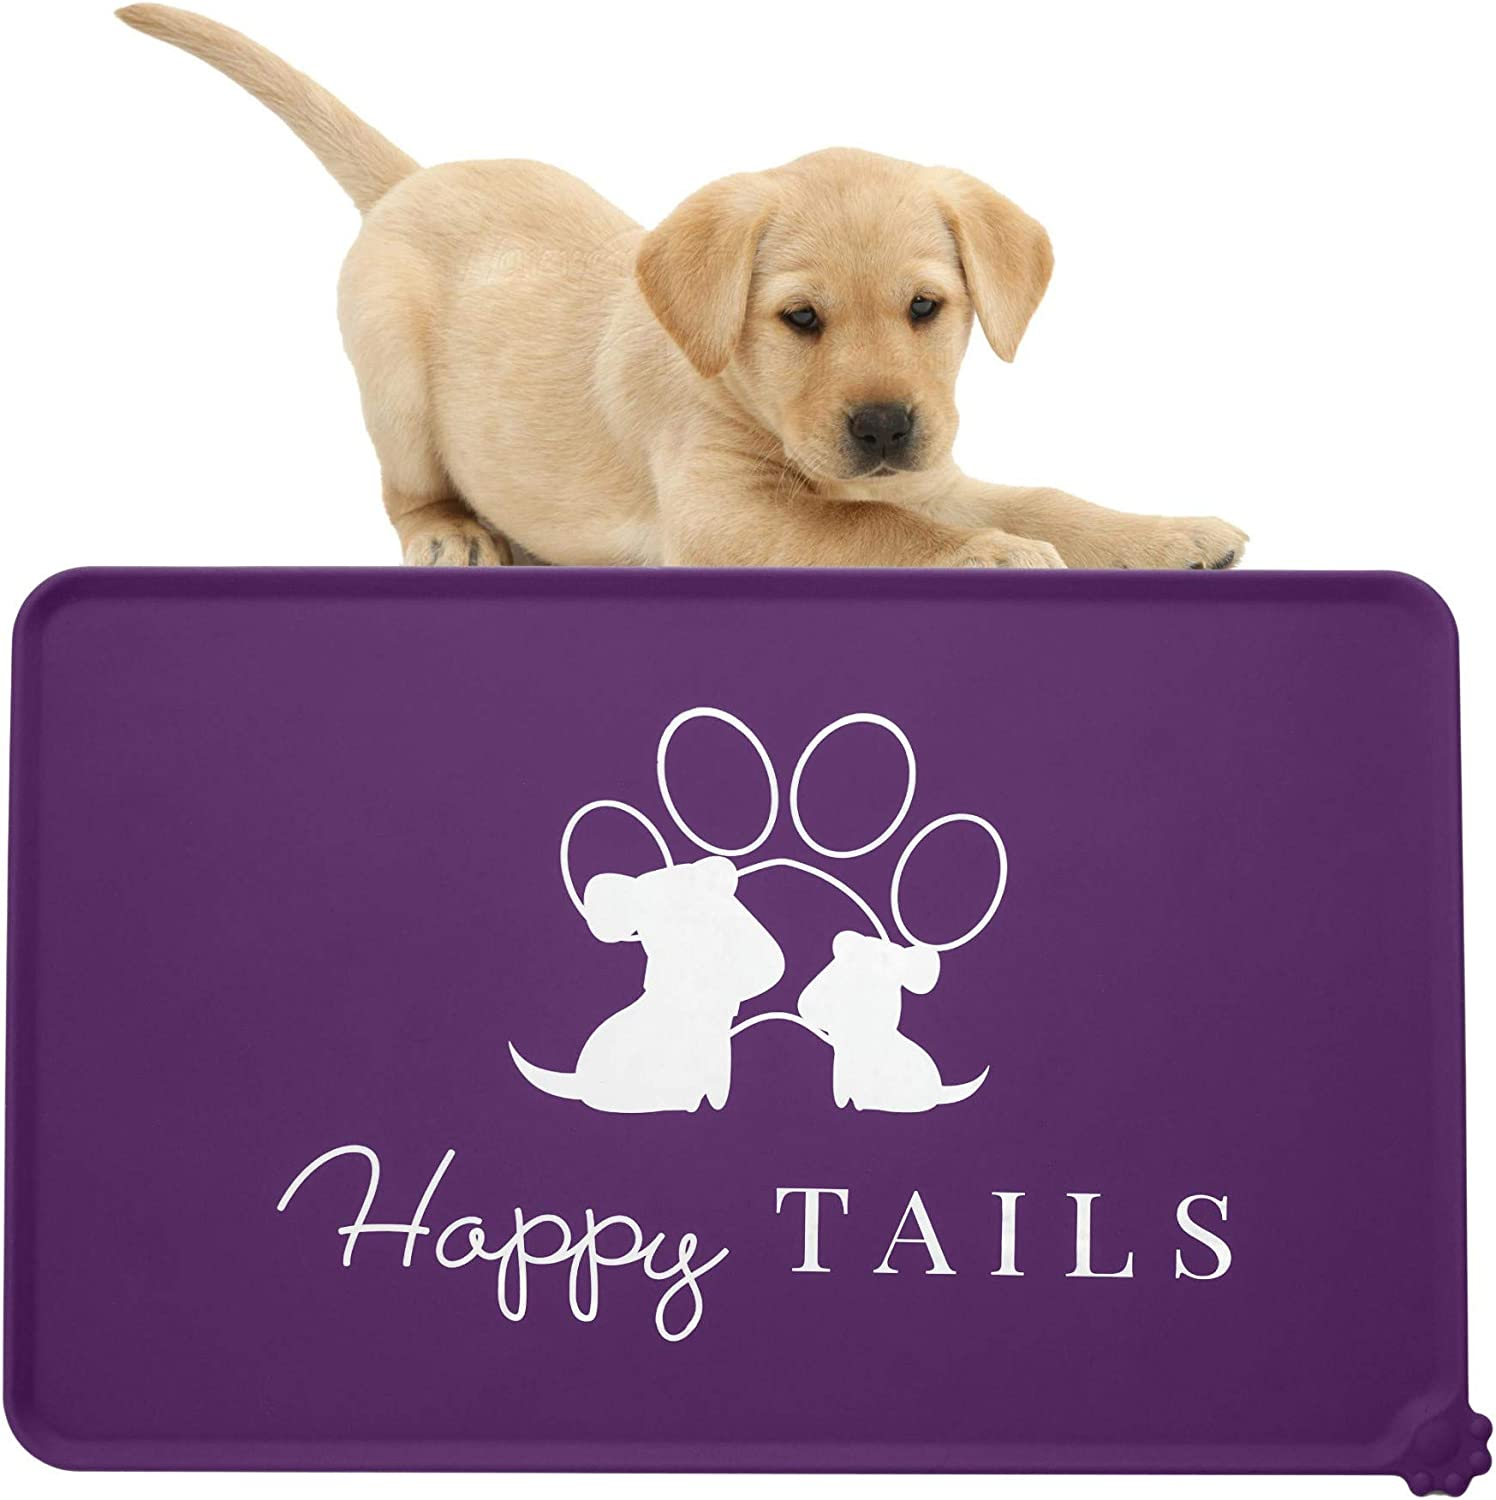 Happy Tails Silicone Dog Cat Bowl Mat   Pet Waterproof Feeding Mat Tray  Dog Food Mat   Non Slip placemat for Dog Food